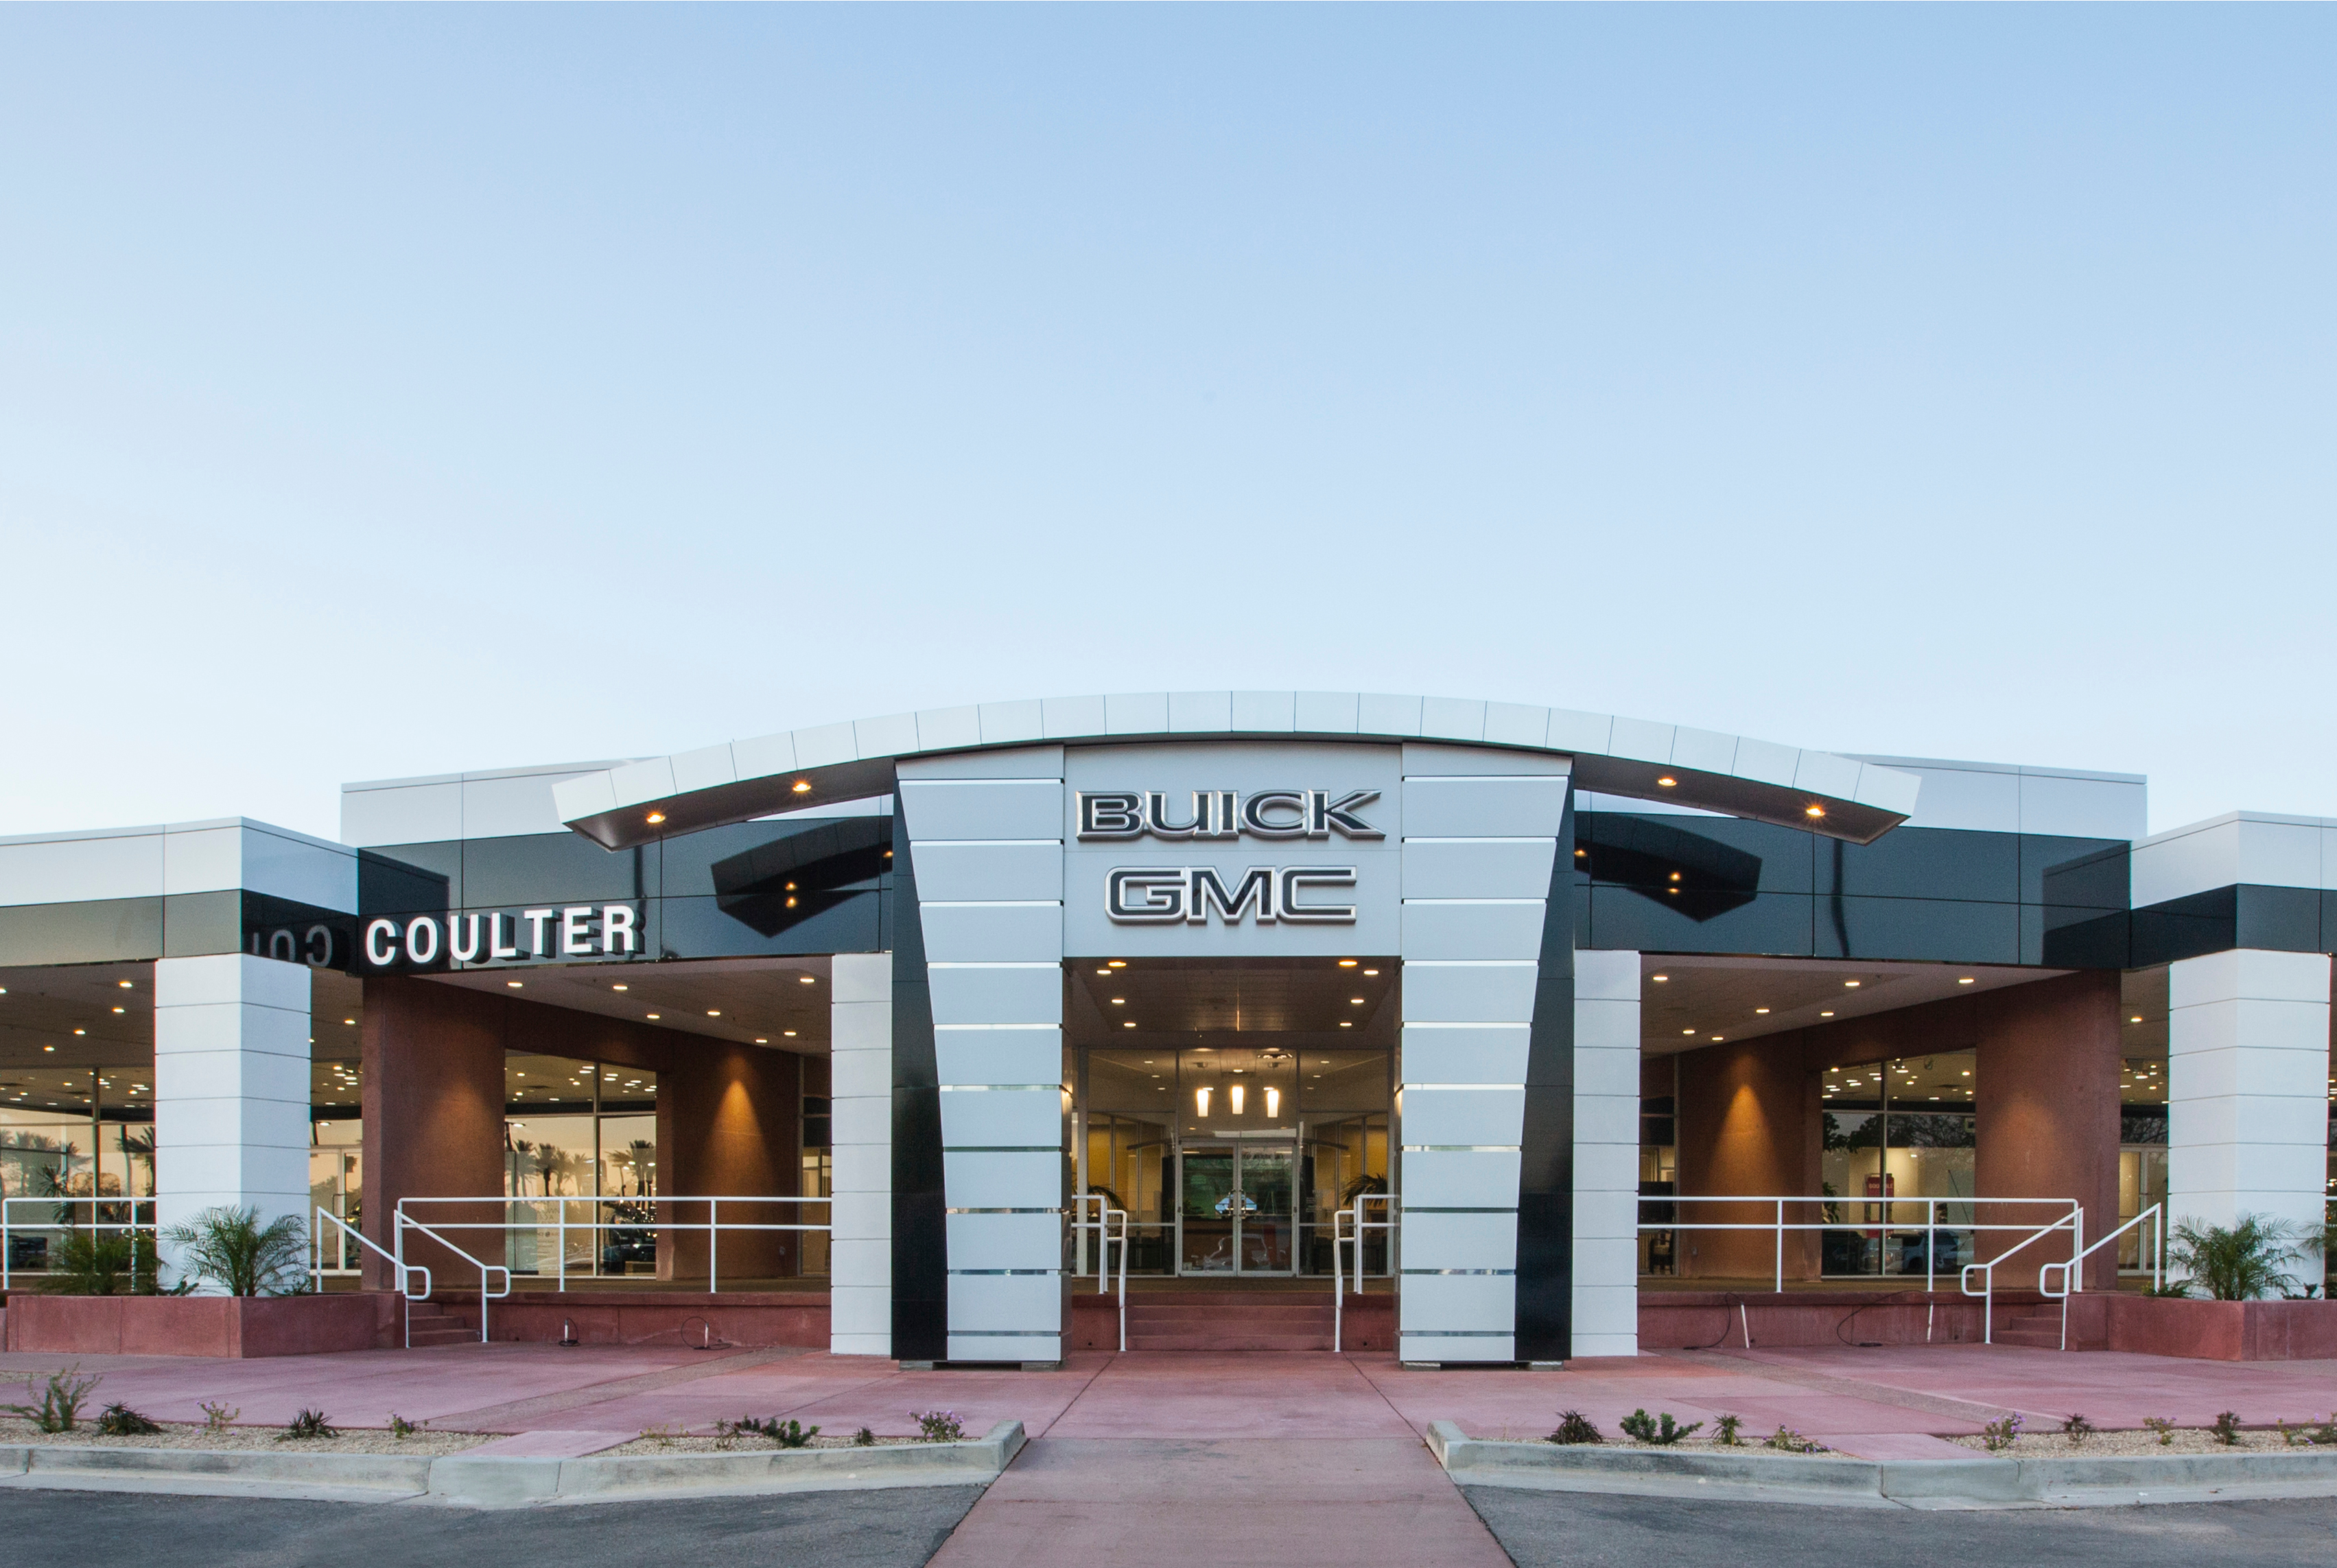 Coulter buick gmc tempe in tempe az whitepages for Coulter motor company tempe